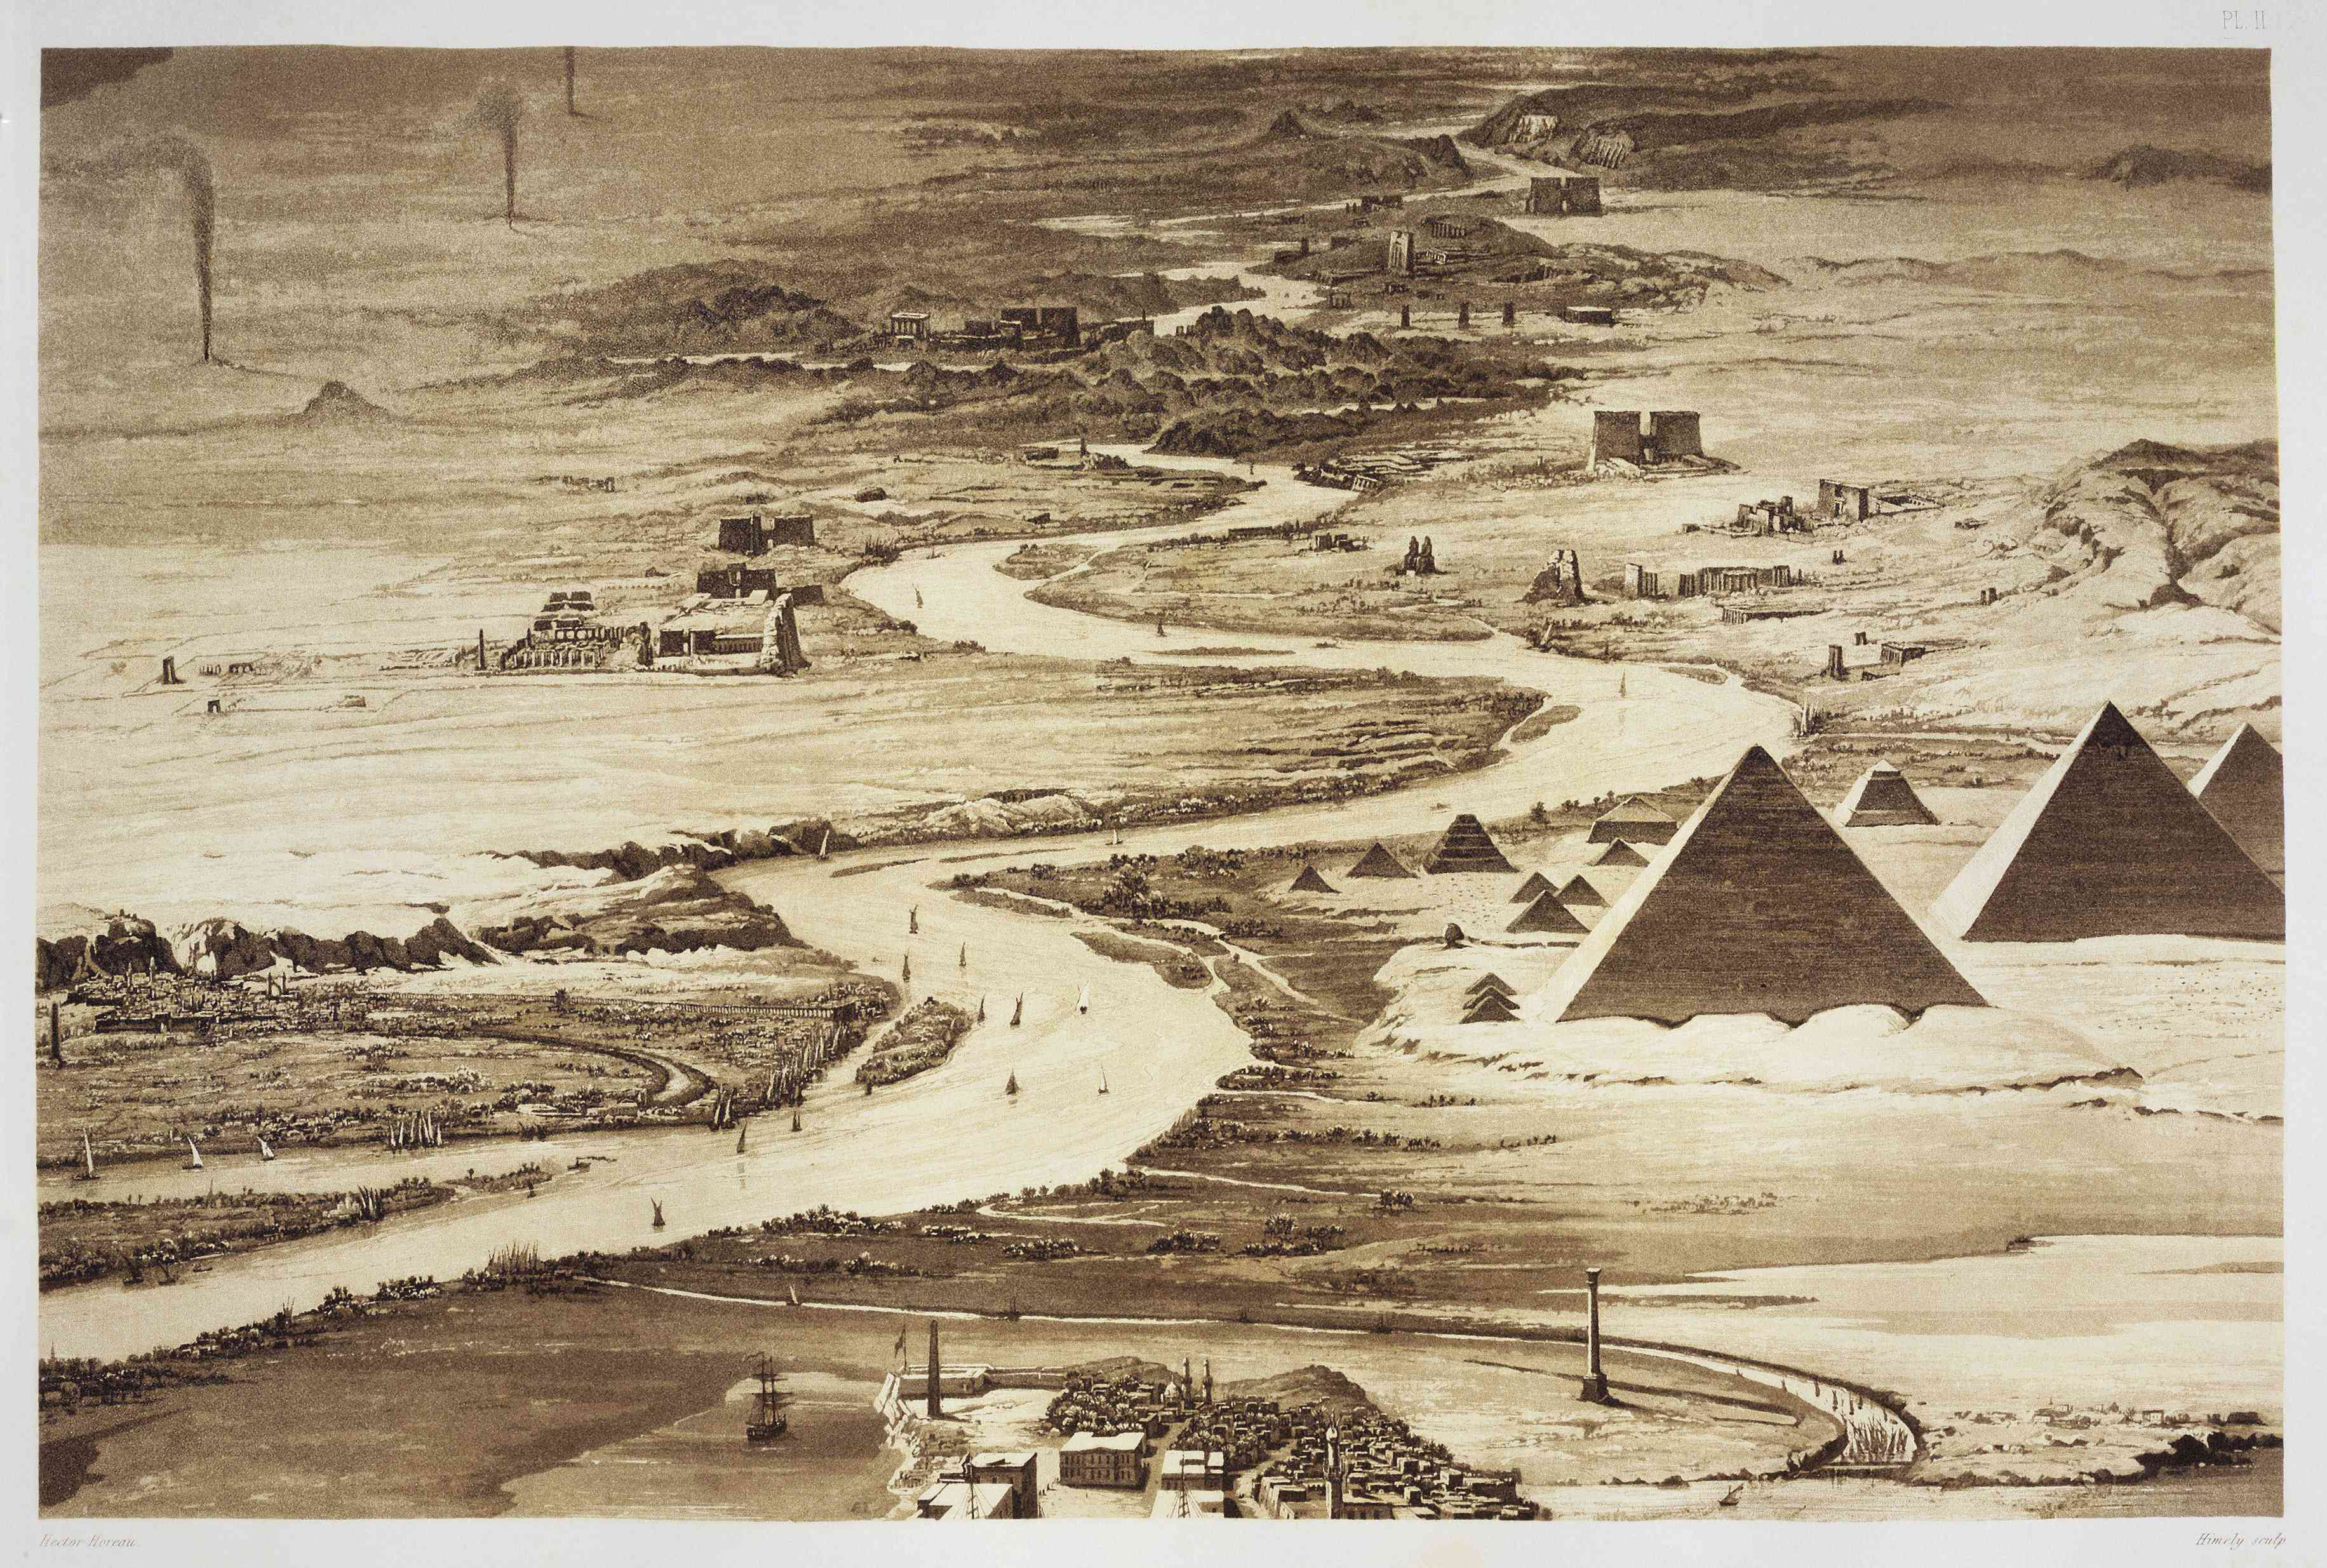 Egypt, Nubia, view of Valley of the Nile from Alexandria at second cataract